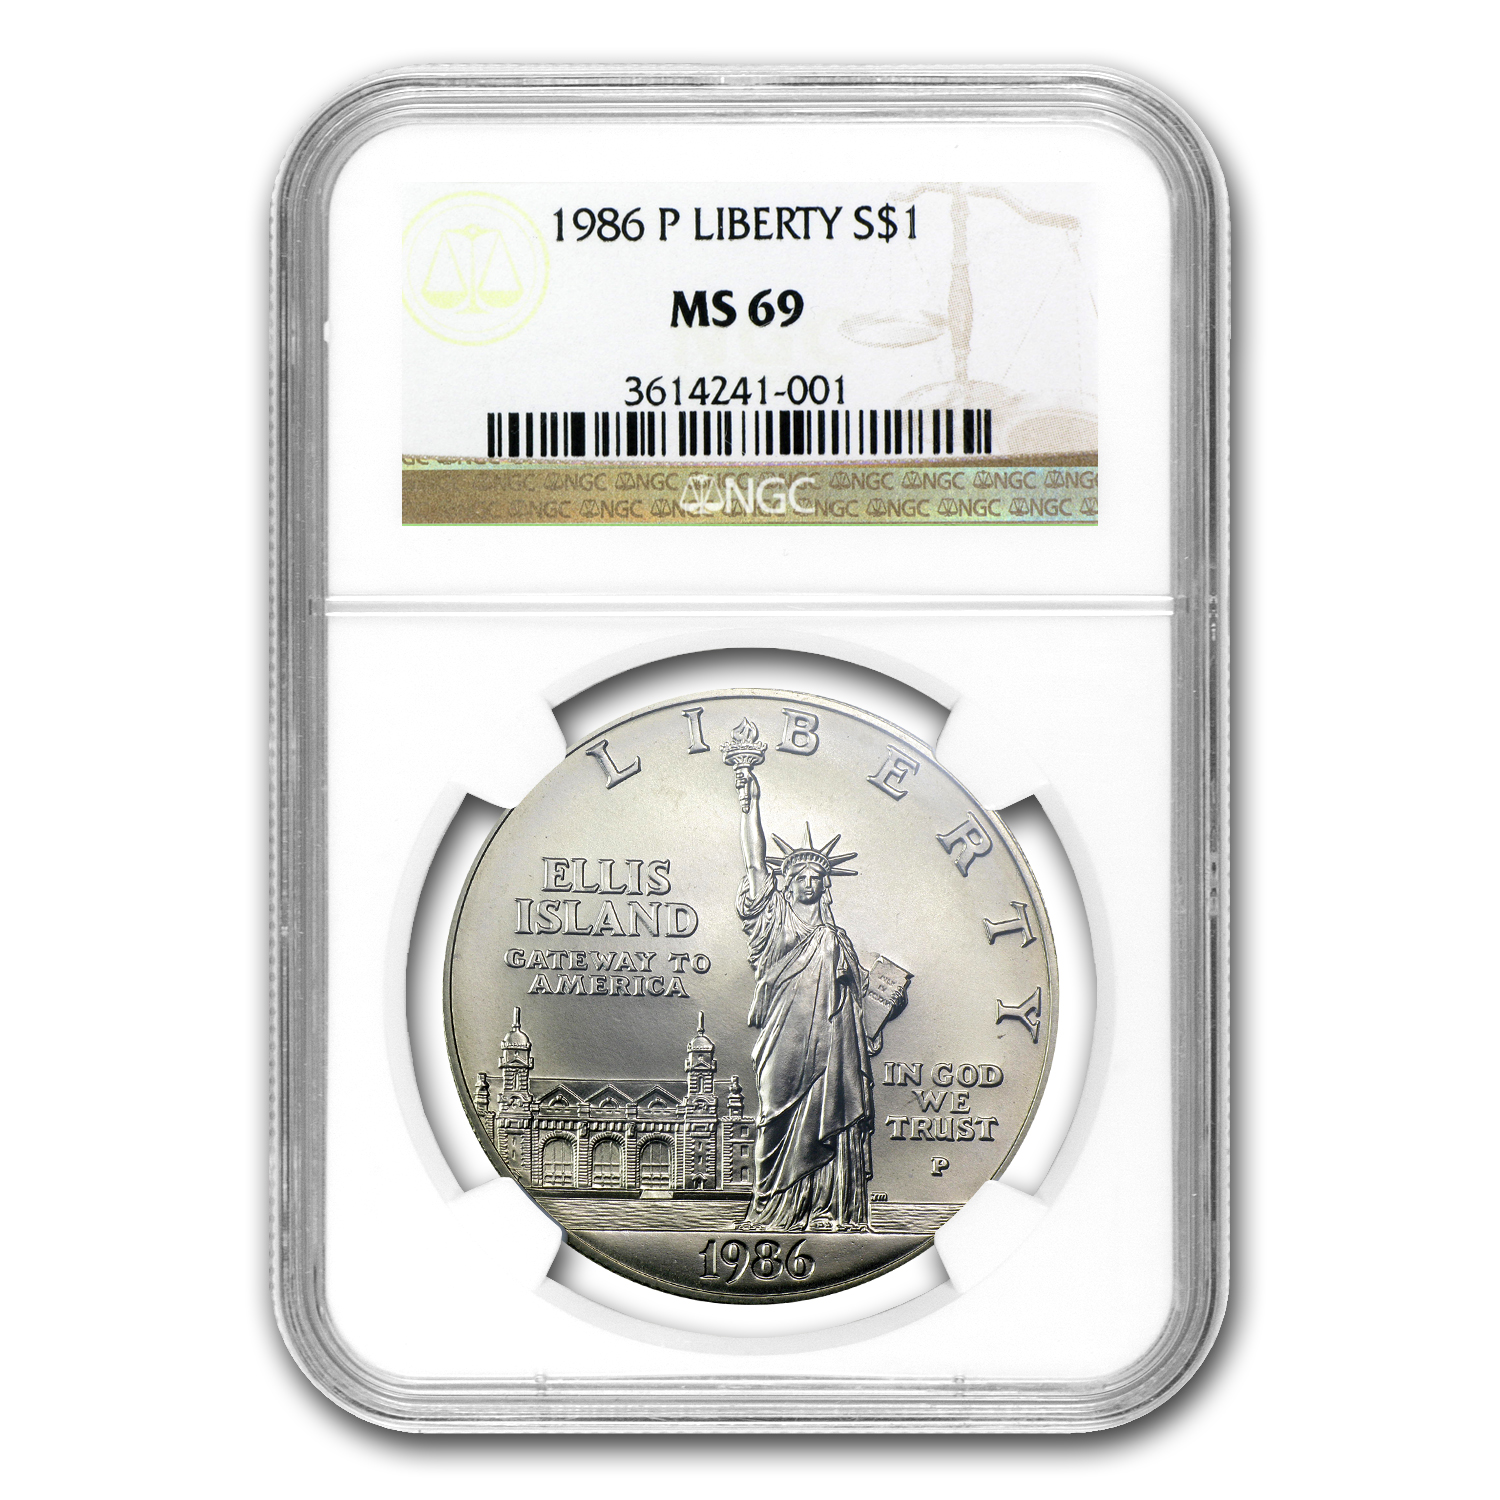 1986-P Statue of Liberty $1 Silver Commem MS-69 NGC